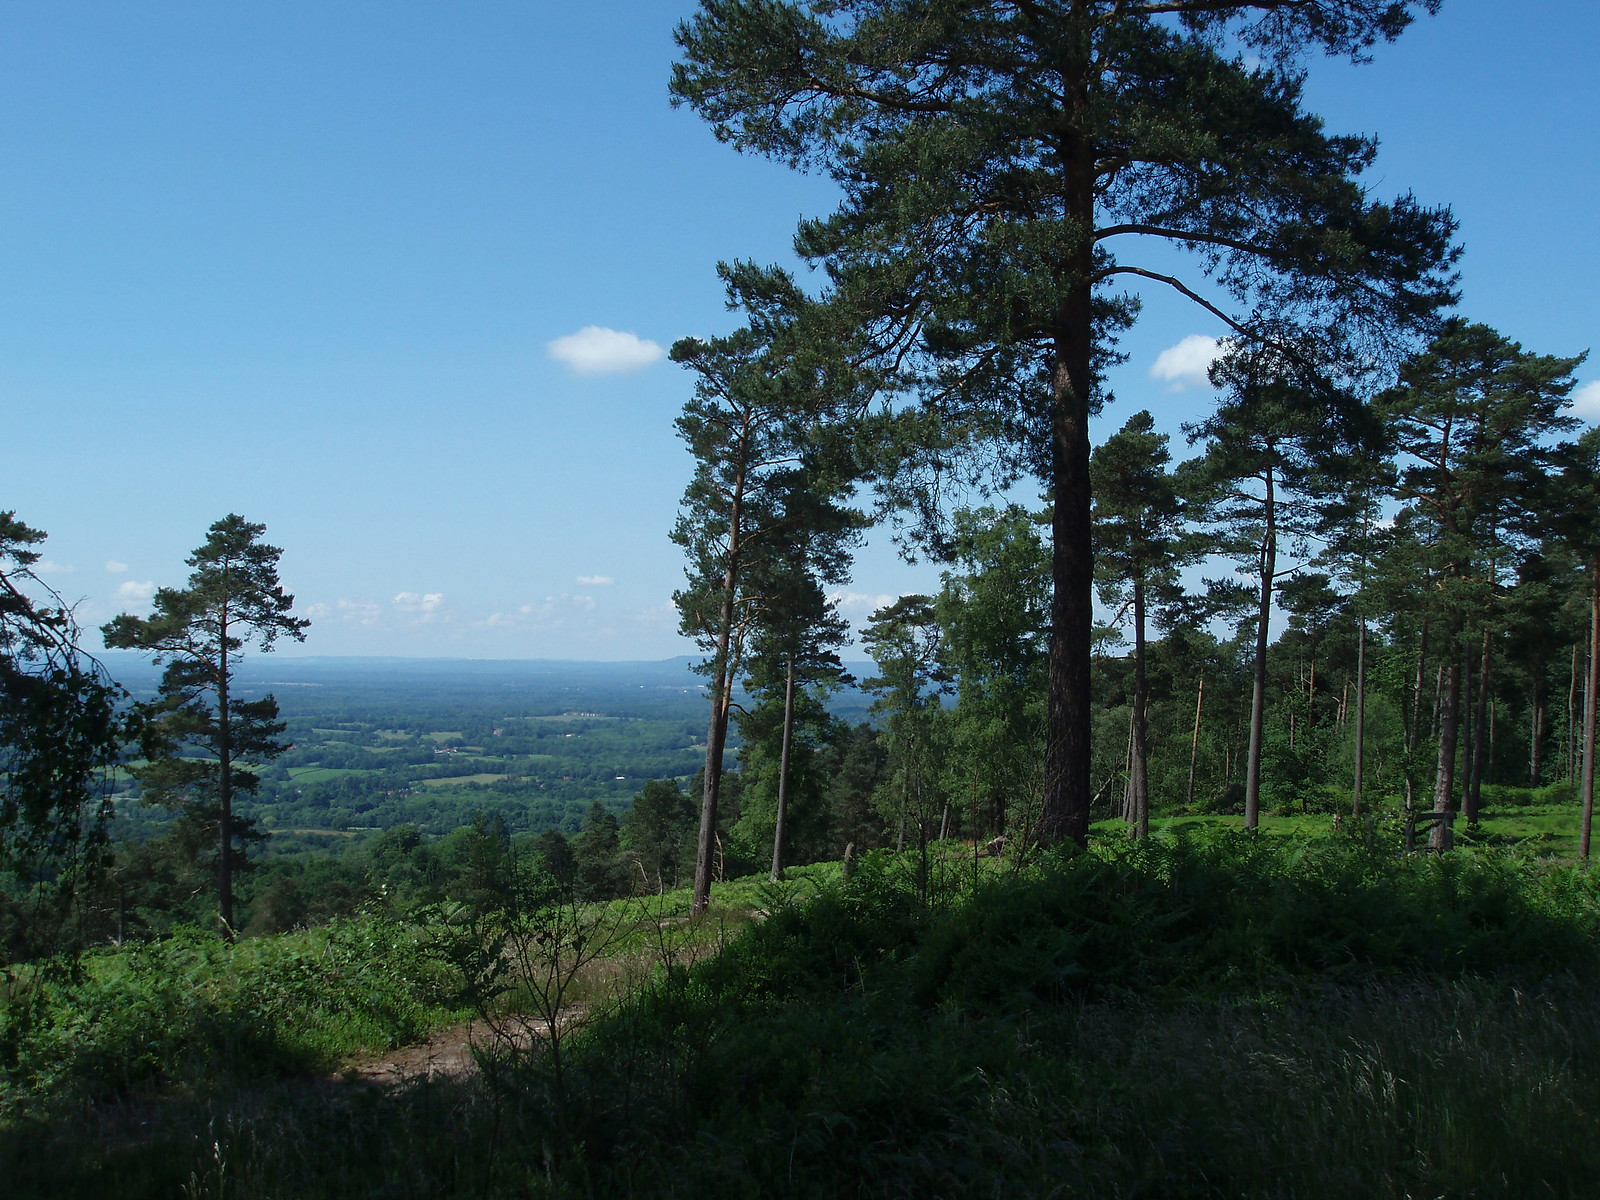 Leith hill looking south